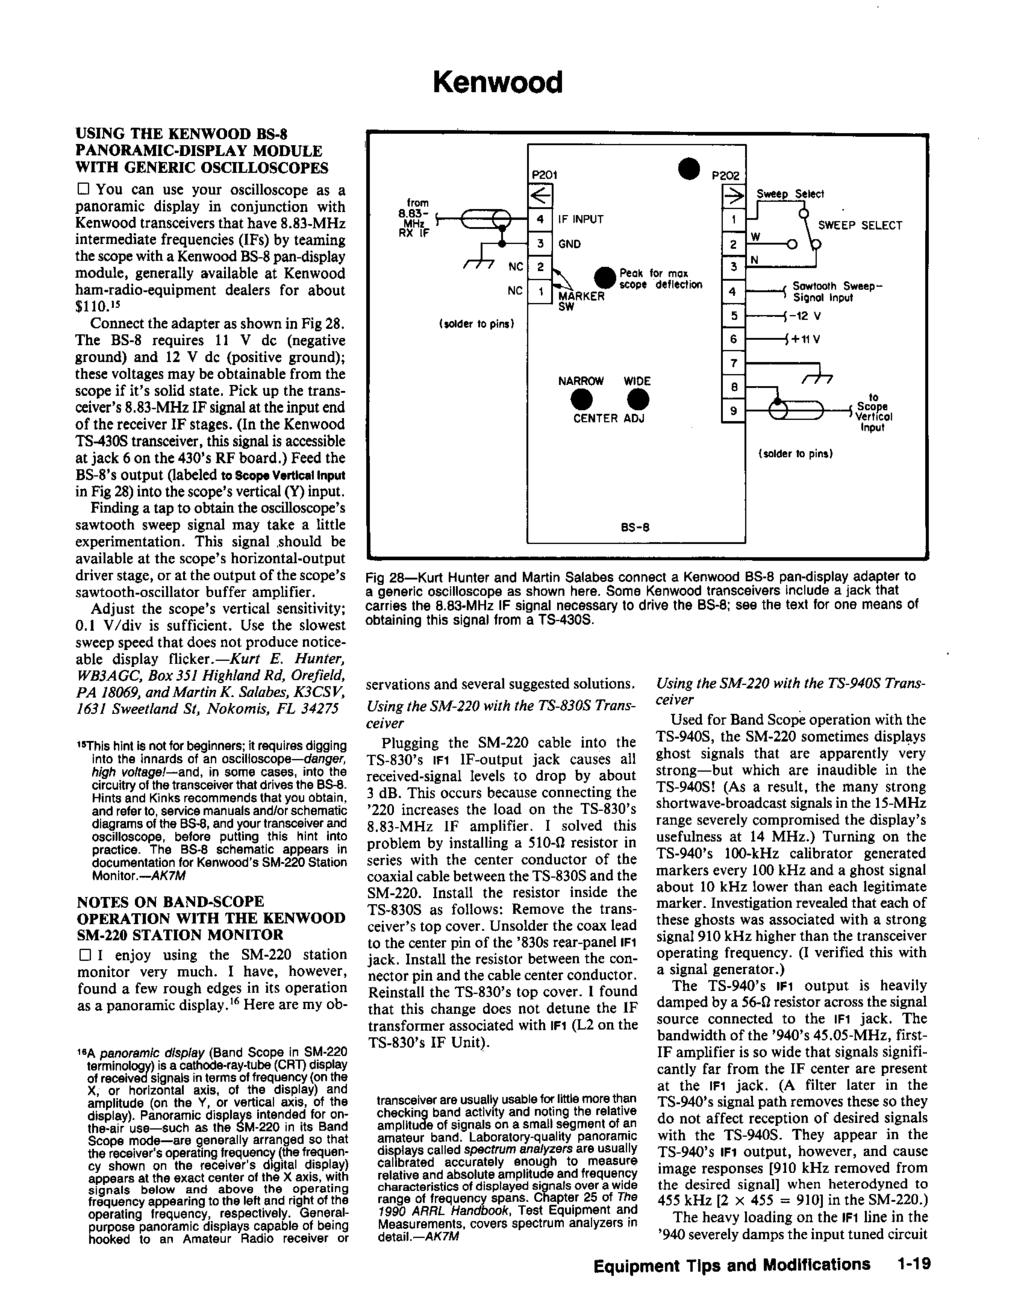 Hints And Kinks For The Radio Amateur Pdf Solderable Perfboard Med Copper Pad Circuit Board West Florida Kenwood Usng Bs 8 Panoramc Dsplay Module Wth Generc Osclloscopes D You